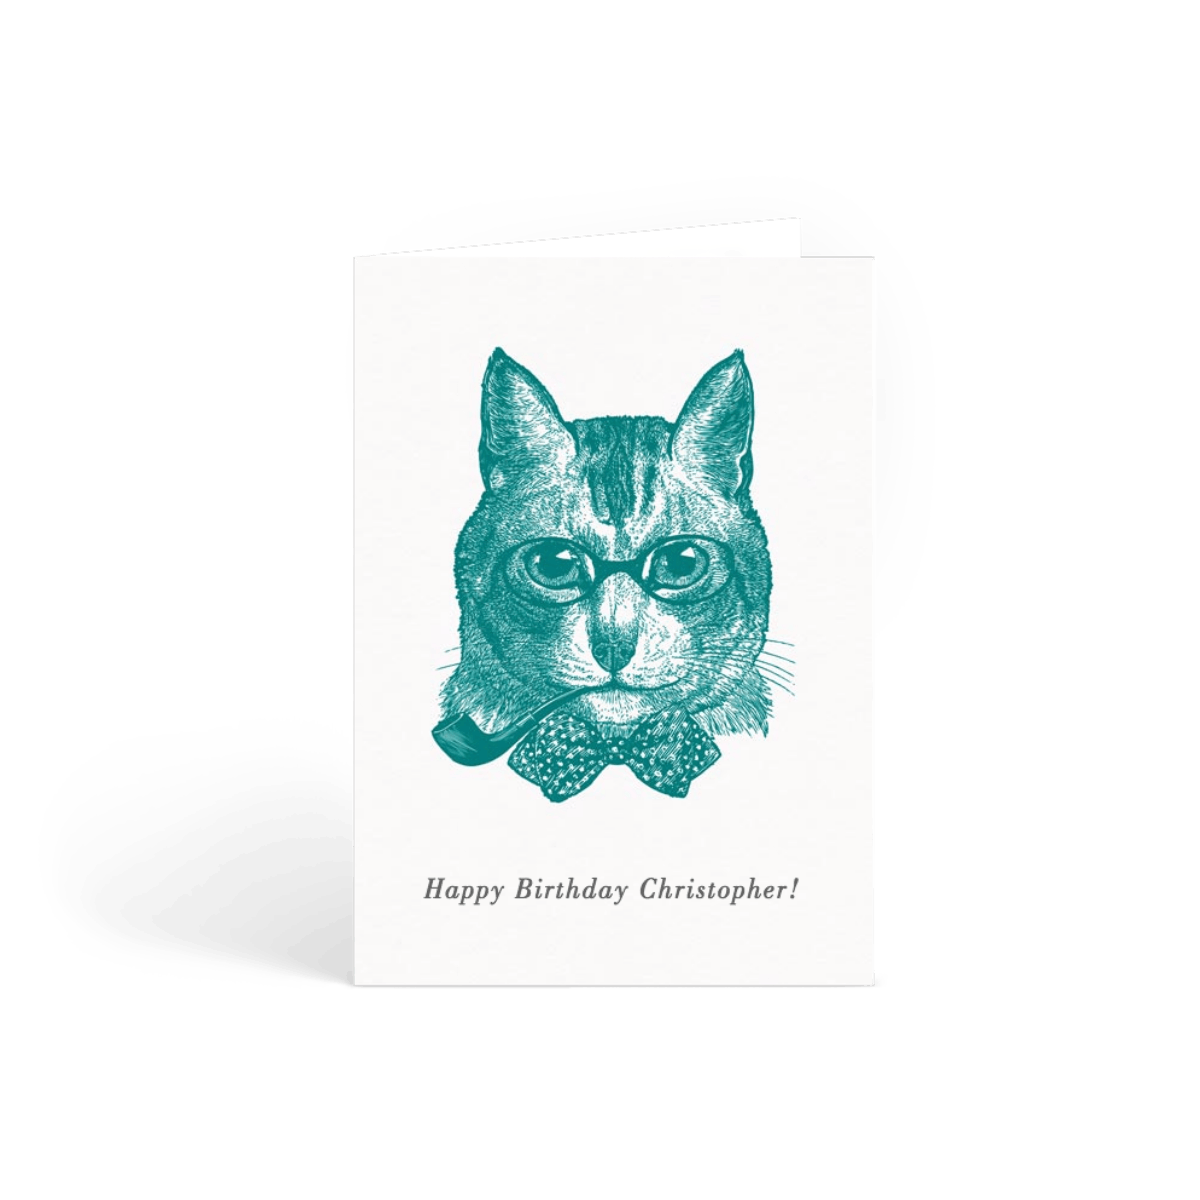 Https%3a%2f%2fwww.papier.com%2fproduct image%2f12963%2f2%2fsophisticated cat 3269 front 1480603331.png?ixlib=rb 1.1